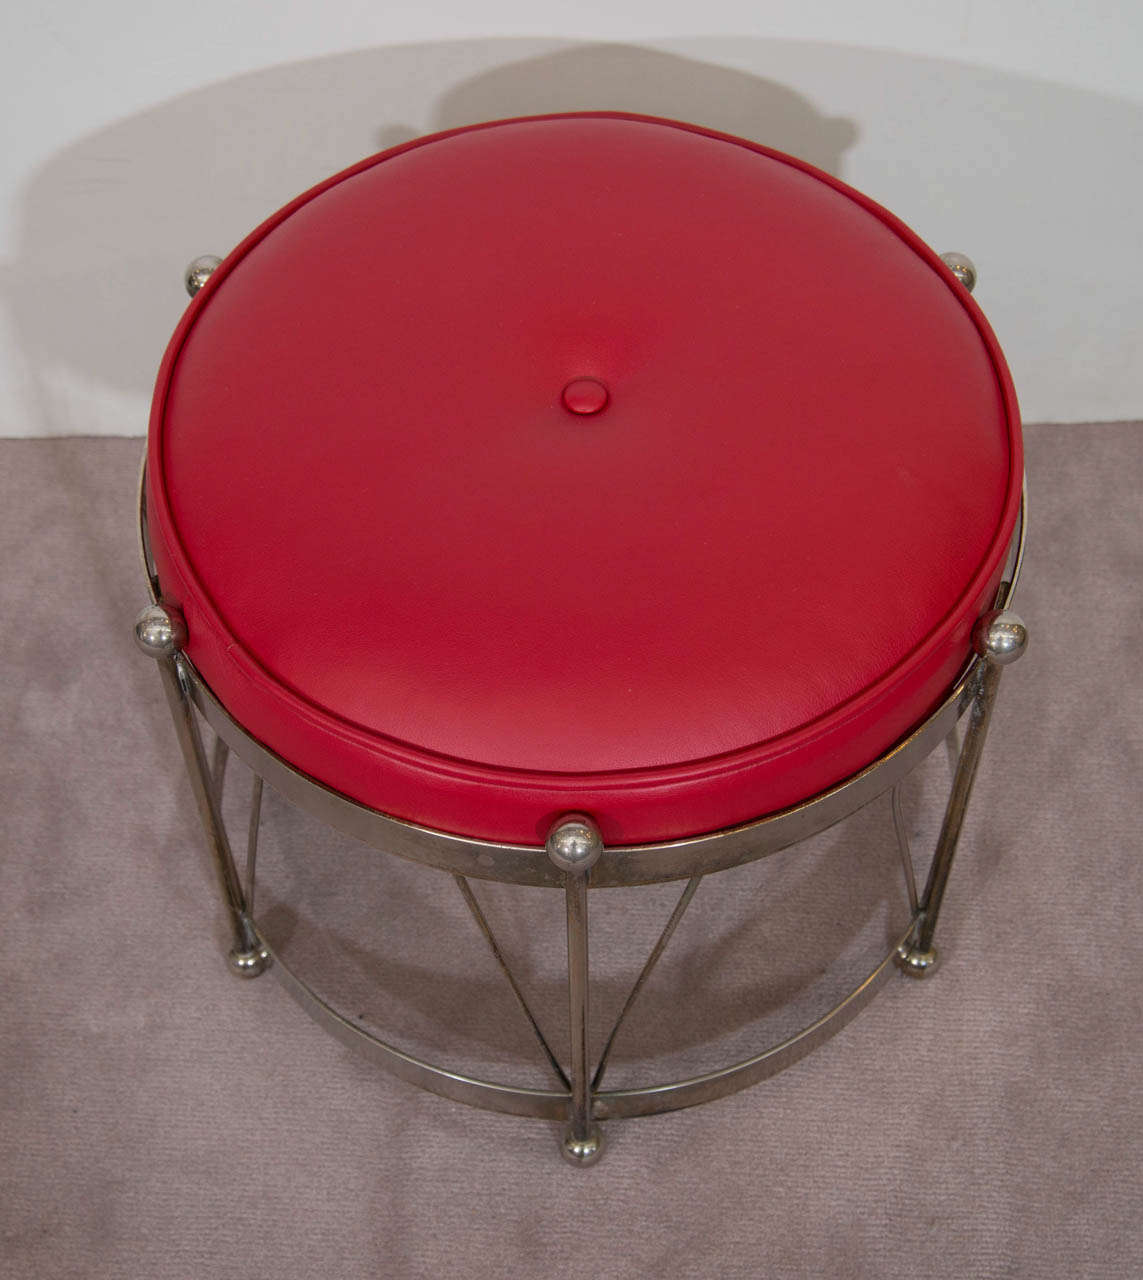 A Mid Century Chrome Drum Bench With Red Leather Upholstery At 1stdibs